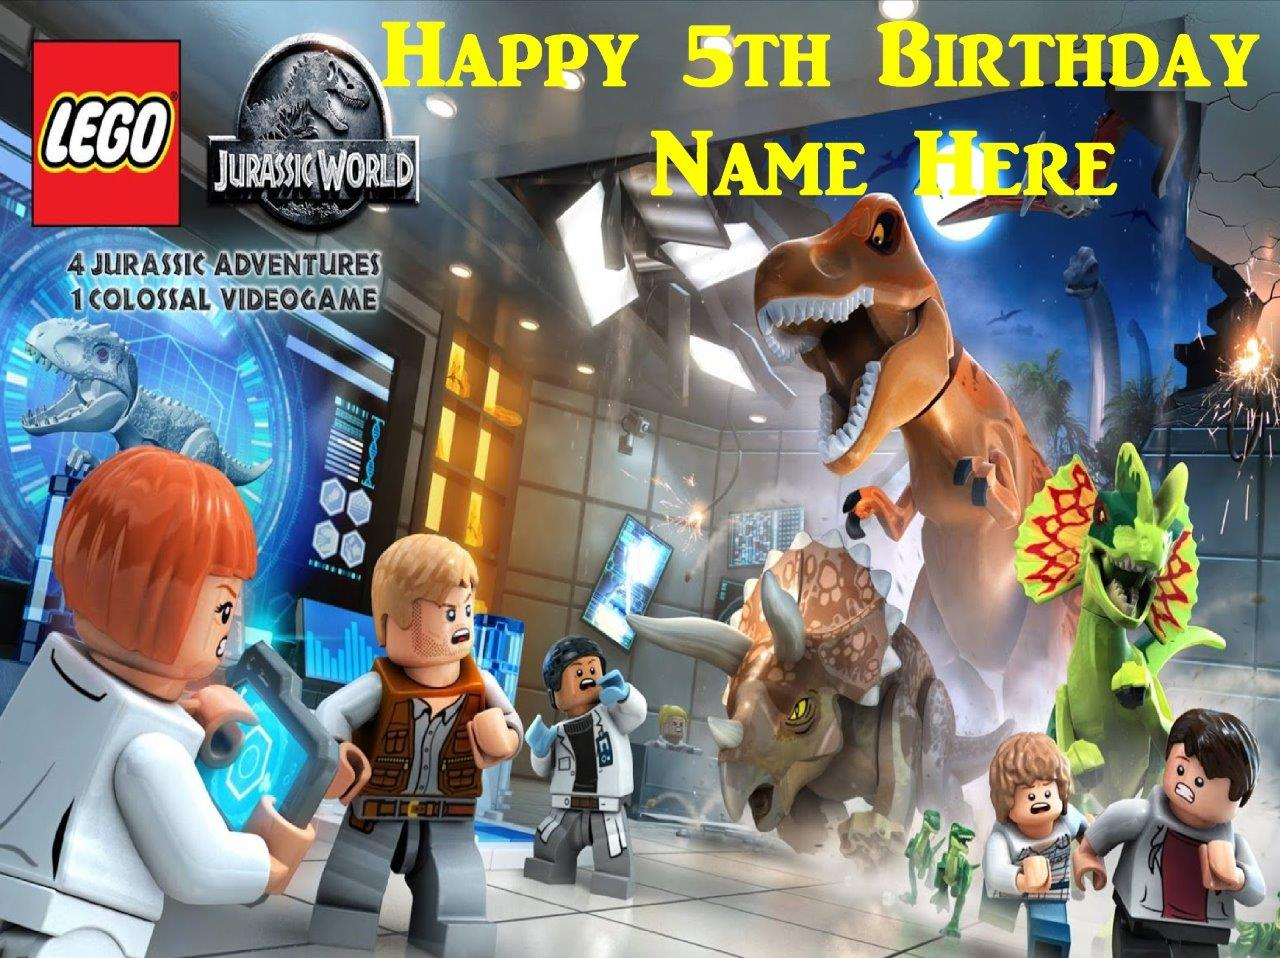 Jurassic park lego edible icing cake toppers personalise for your jurassic park lego edible icing cake toppers personalise gumiabroncs Images